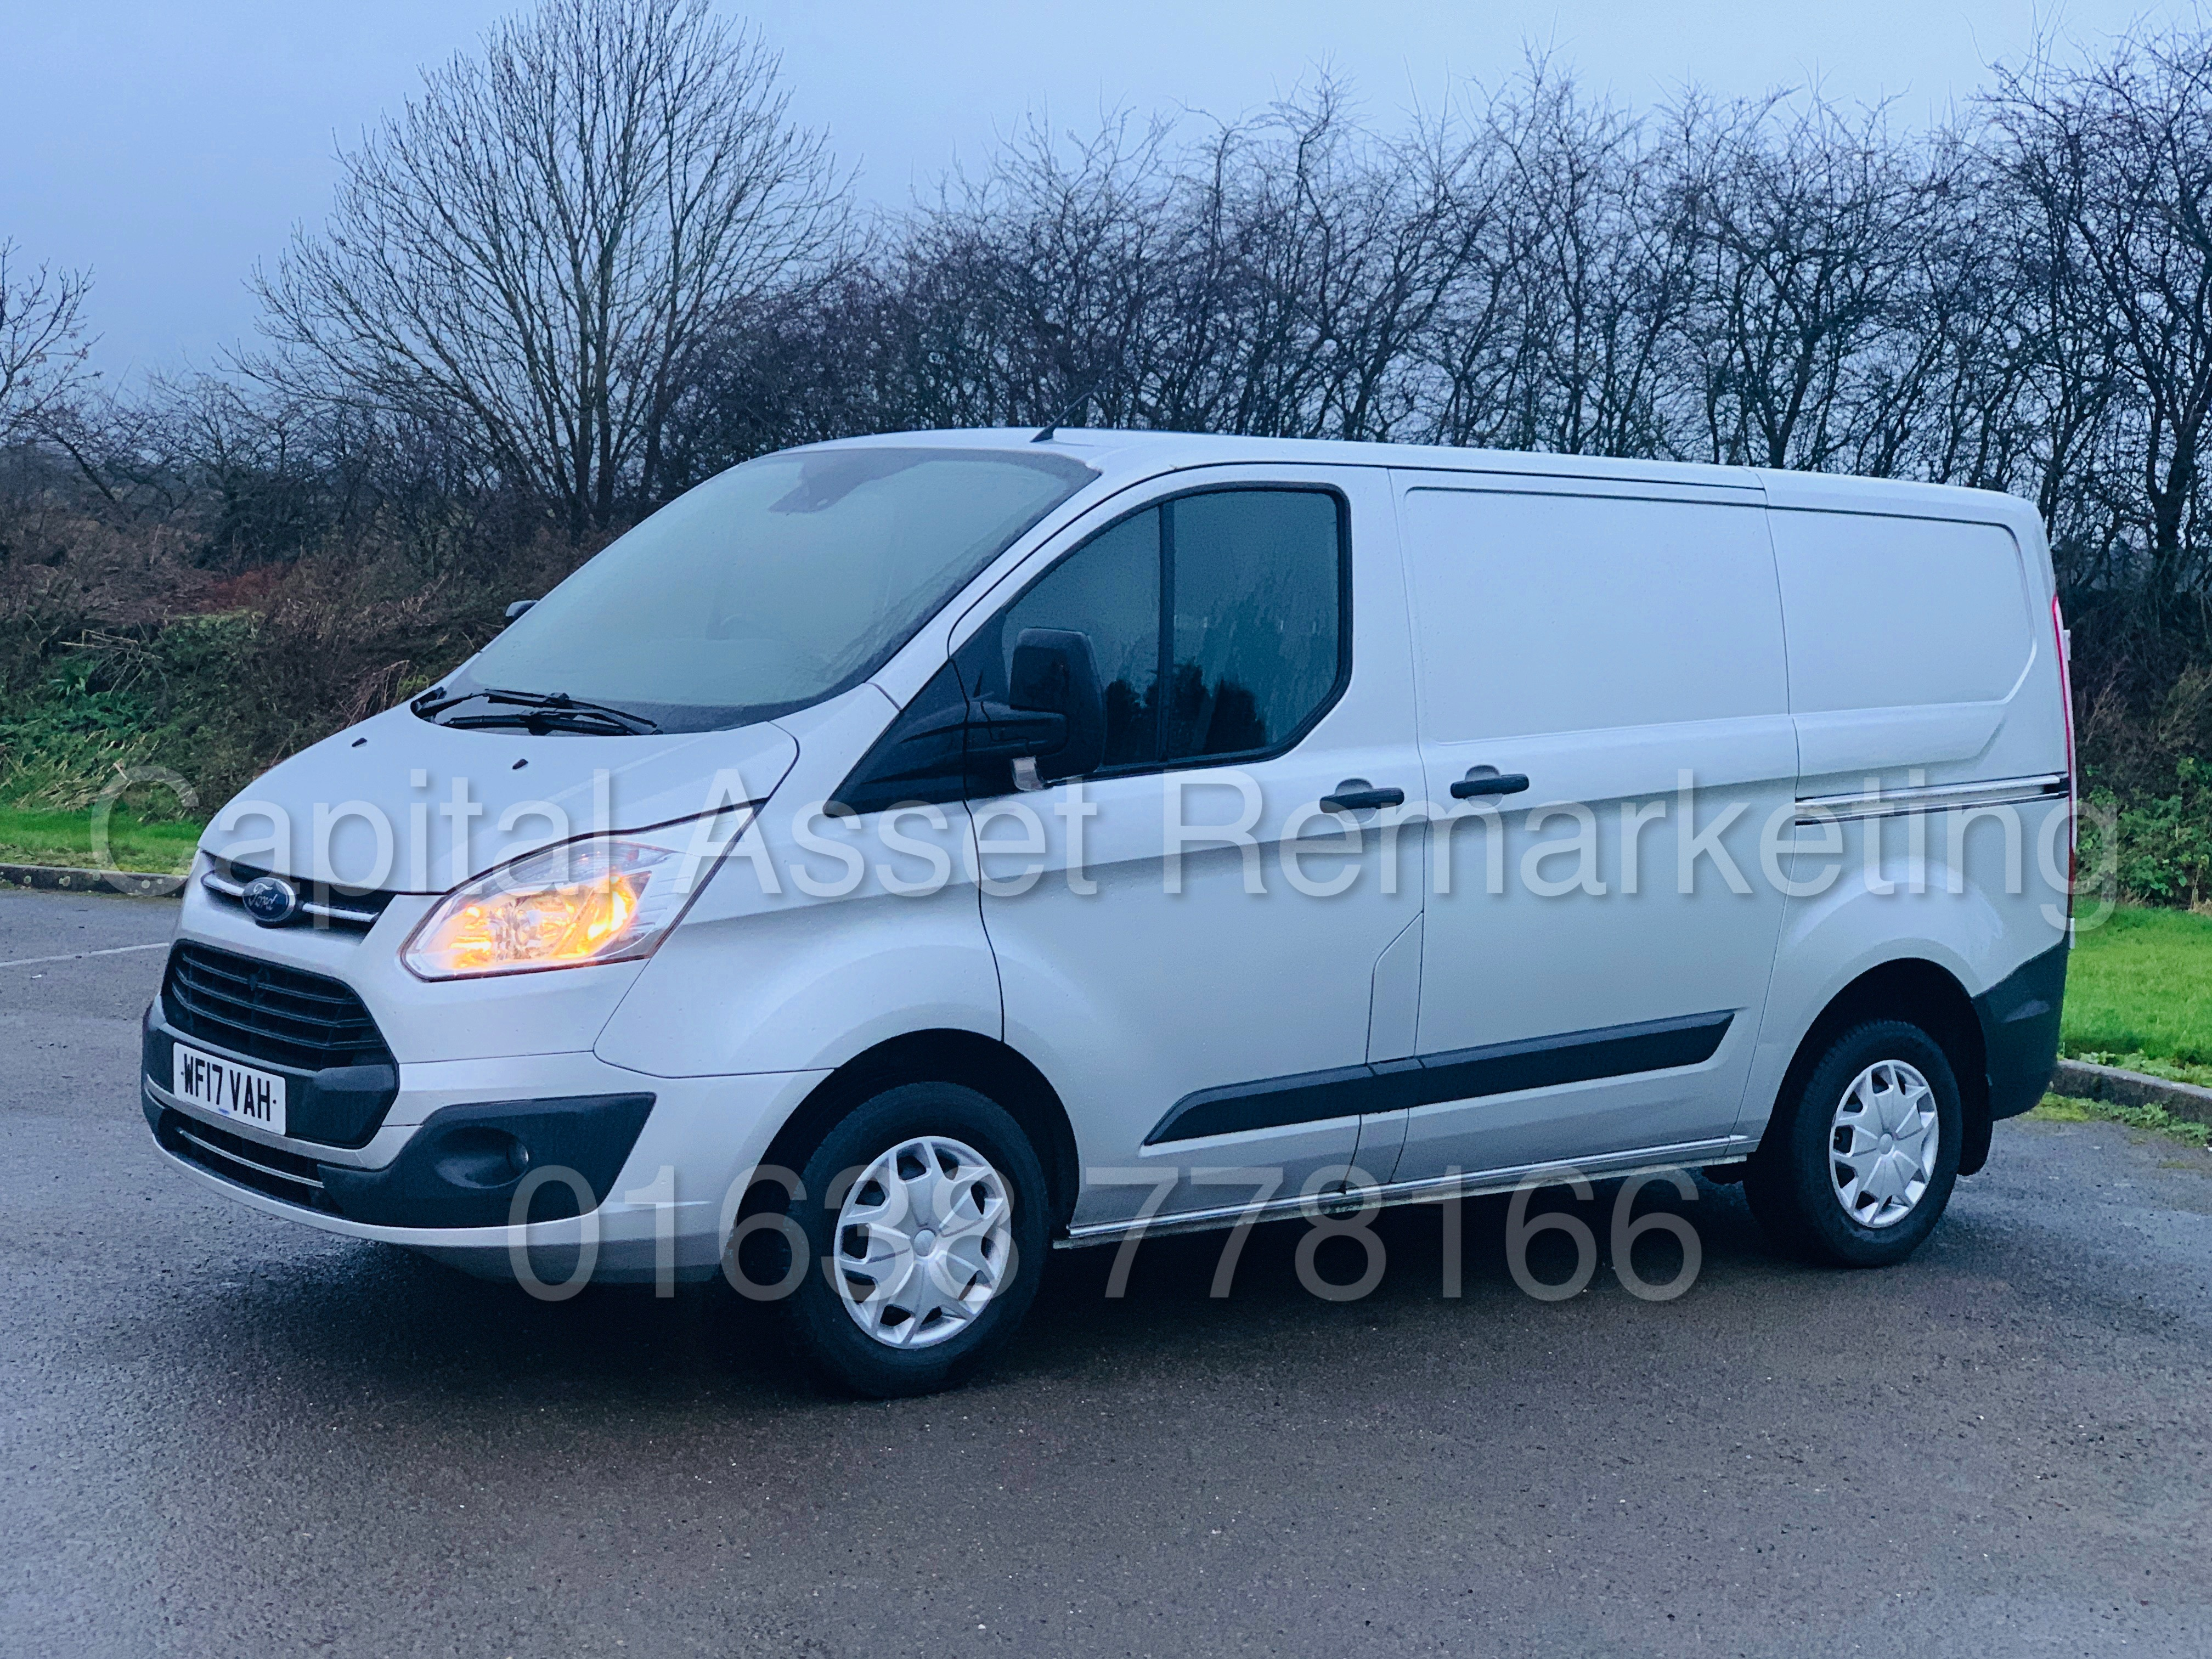 (On Sale) FORD TRANSIT *TREND* 290 SWB (2017 - EURO 6 / AD-BLUE) '2.0 TDCI - 130 BHP - 6 SPEED' - Image 7 of 41